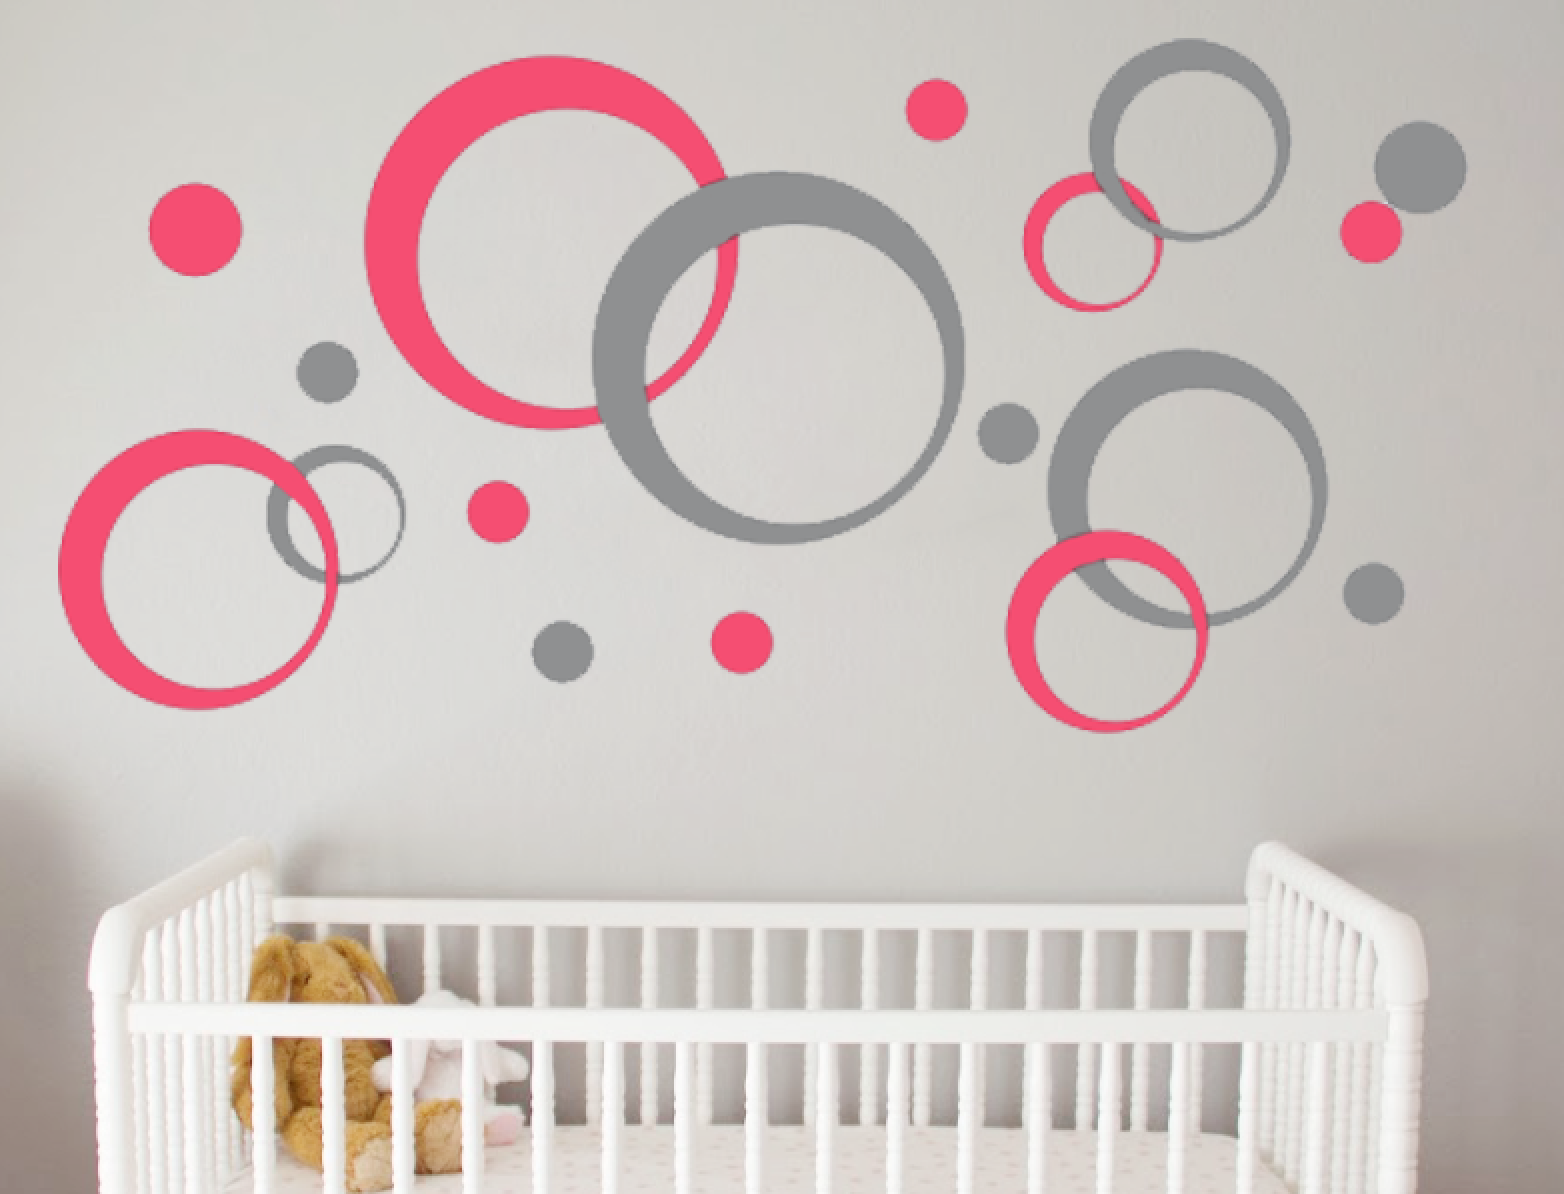 Geometric Wall Decal Bubbles Circles Retro Decor L And Stick Decals